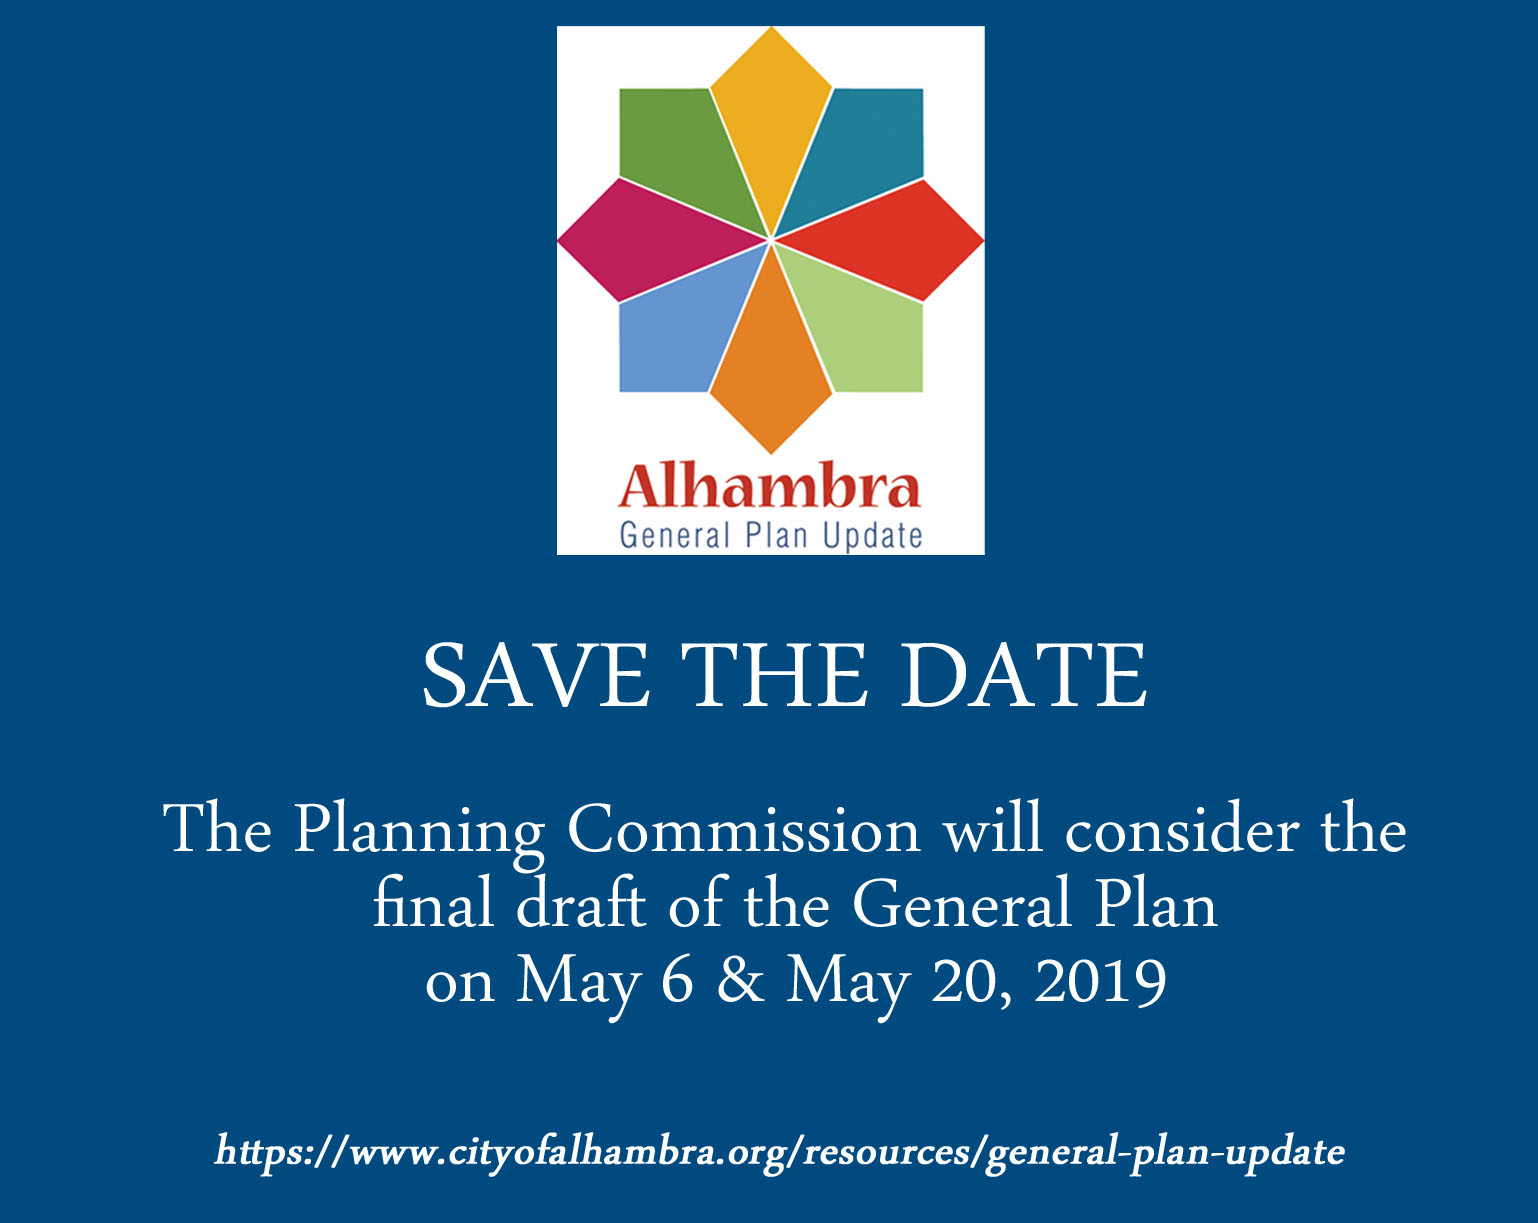 Save the Date the Planning Commission will consider the final draft of the General Plan on May 6 and May 20, 2019